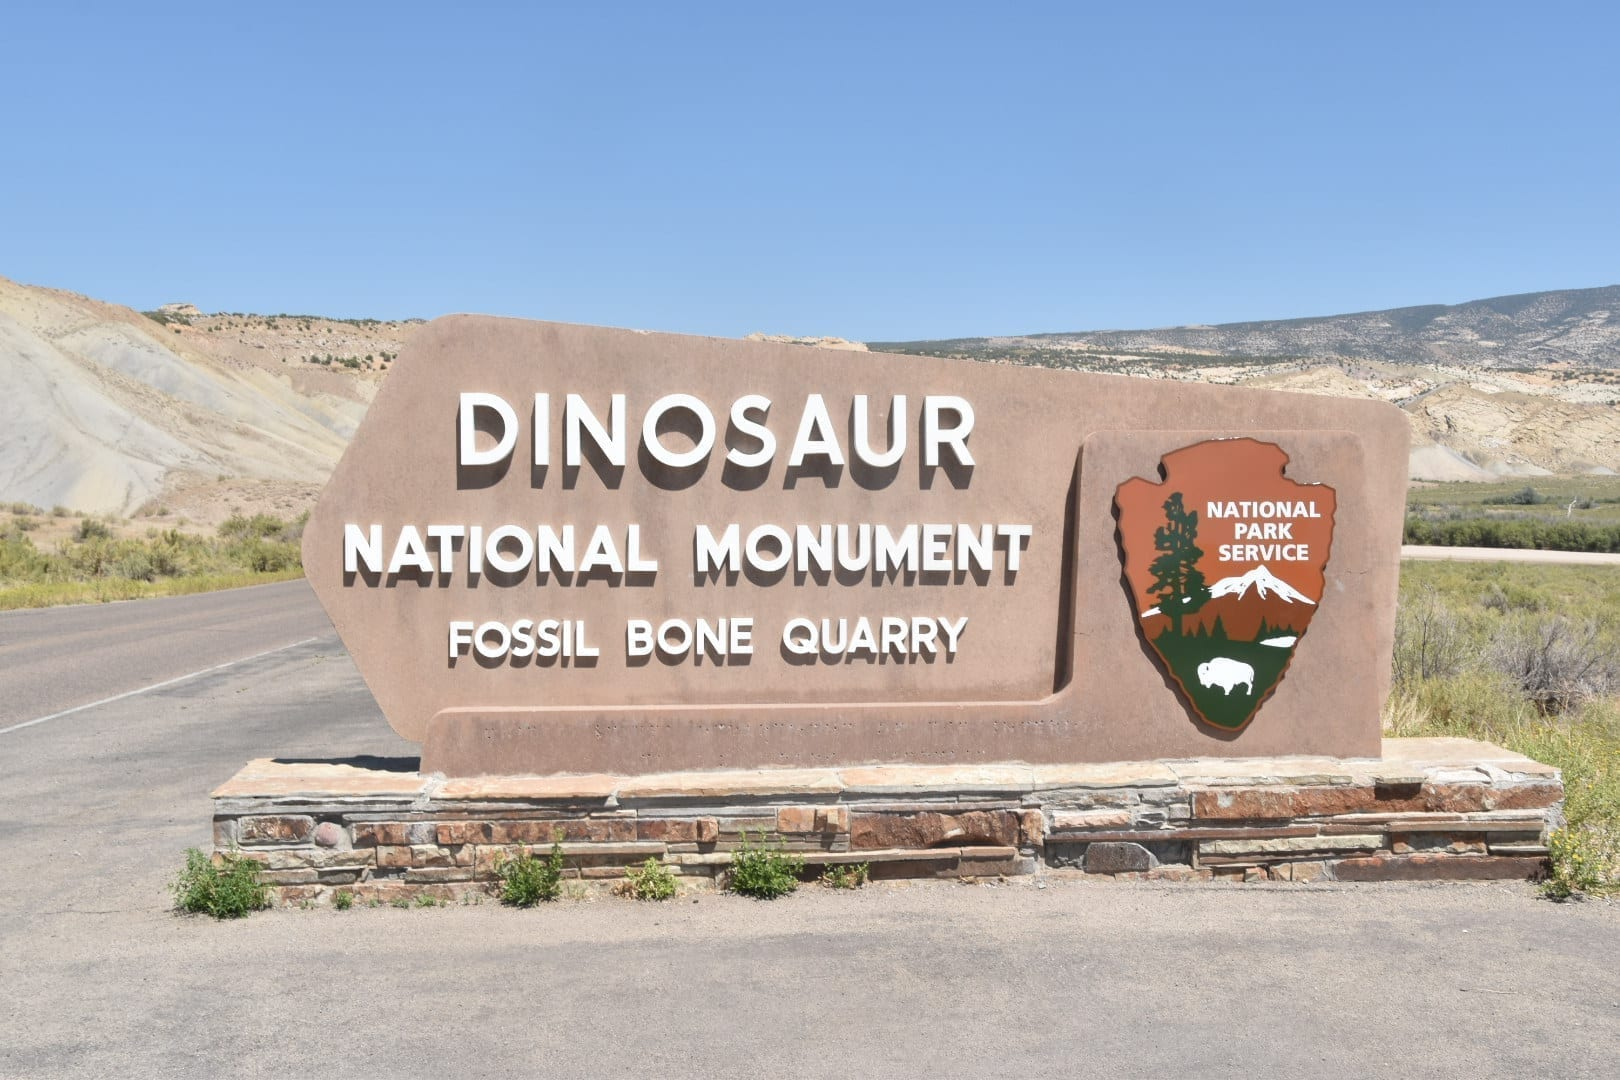 Visiting Dinosaur National Monument